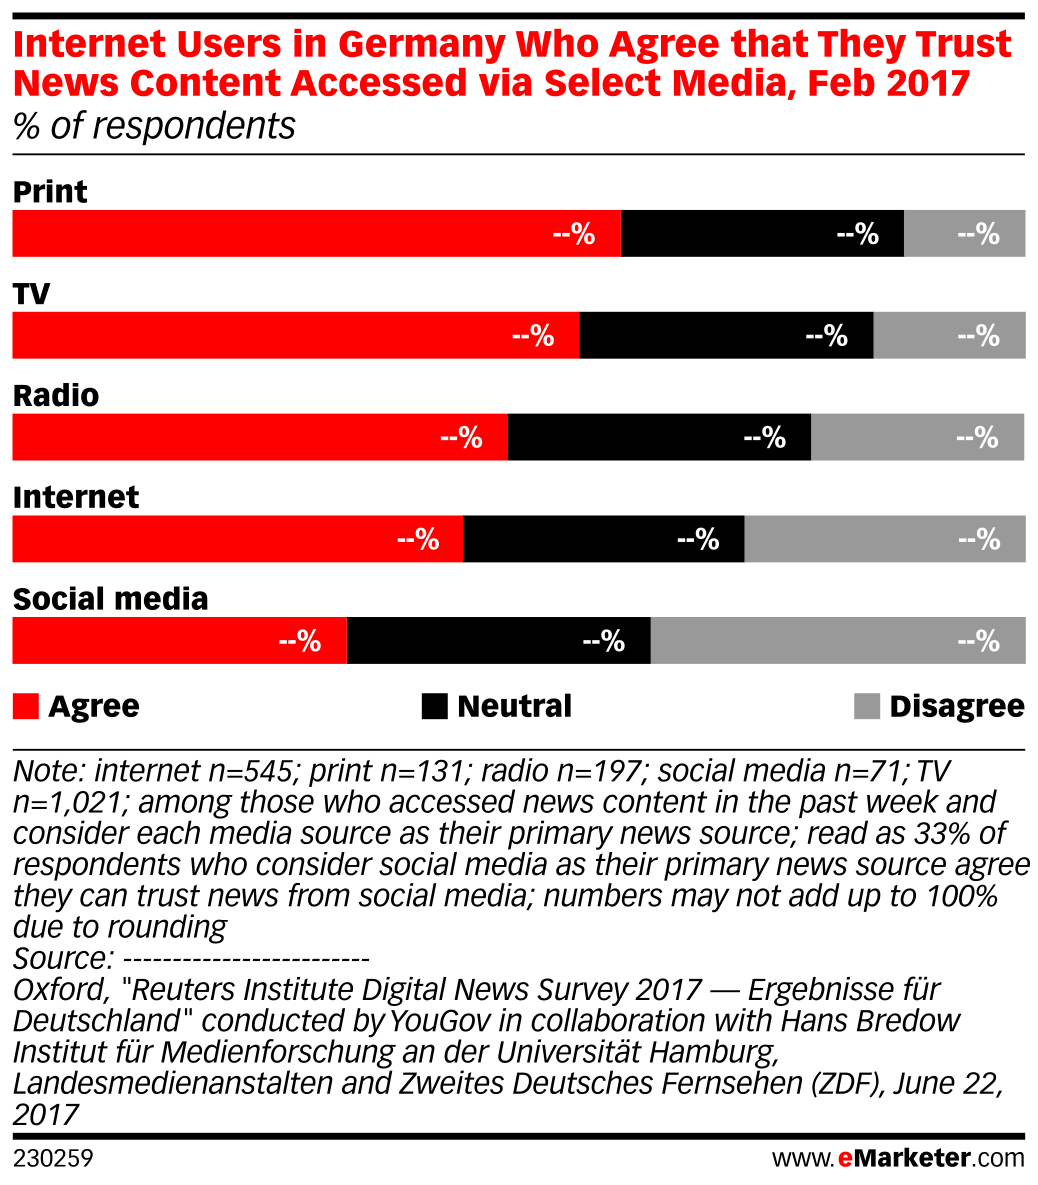 Internet Users in Germany Who Agree that They Trust News Content Accessed via Select Media, Feb 2017 (% of respondents)